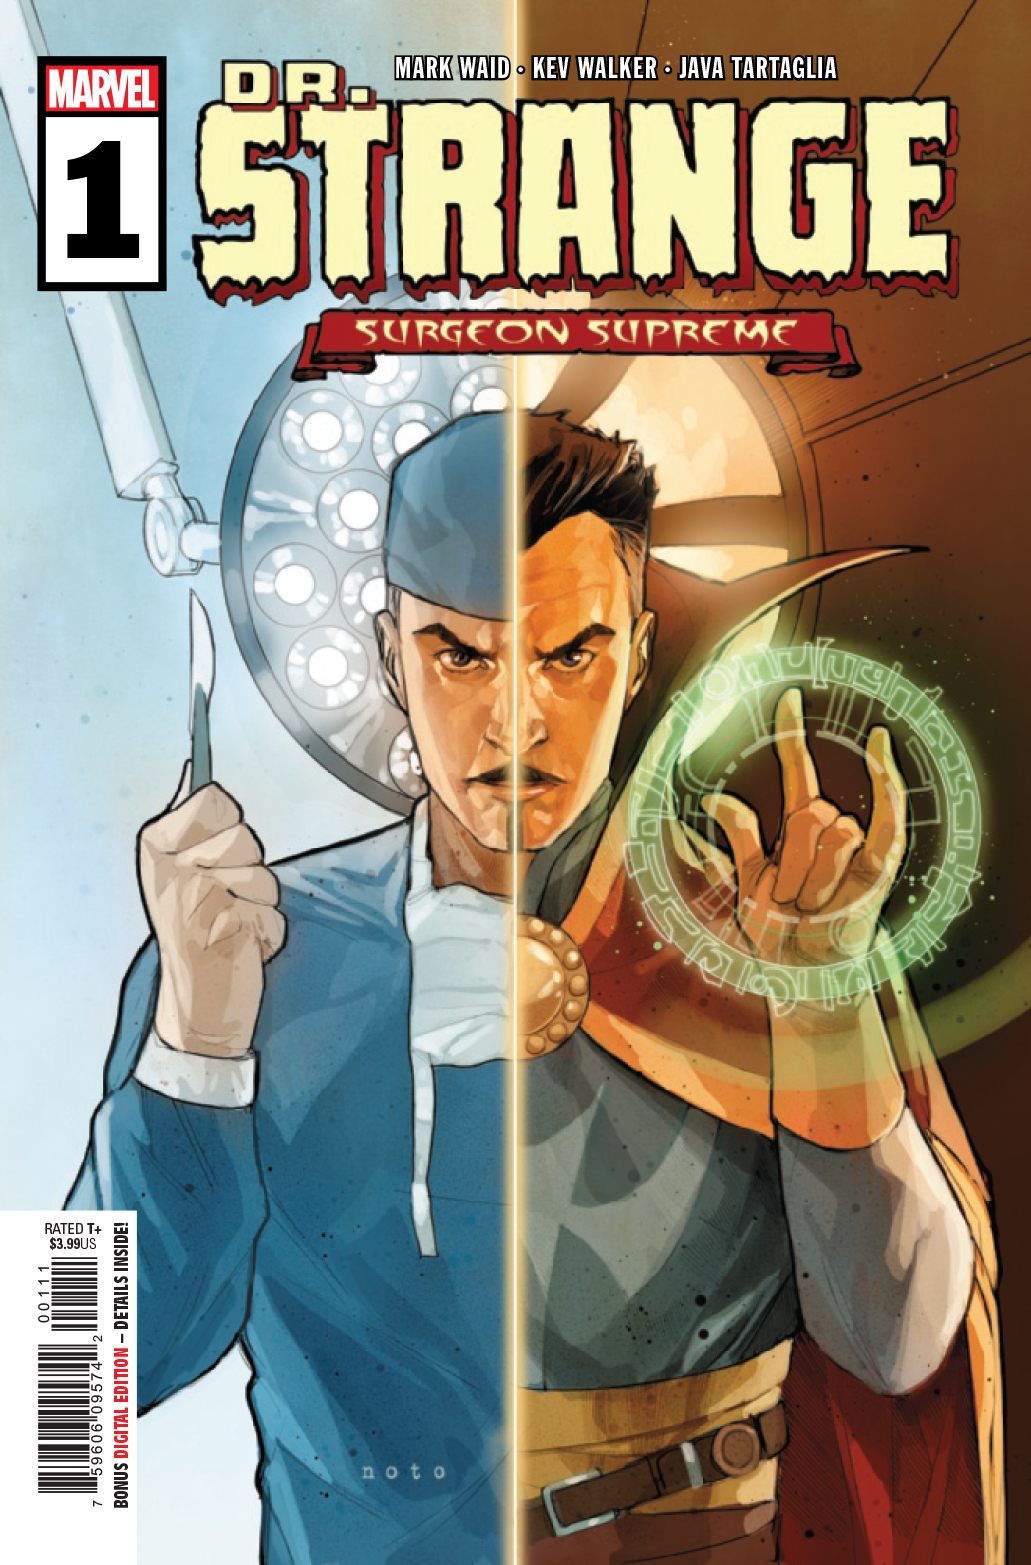 Image result for dr strange surgeon supreme #1